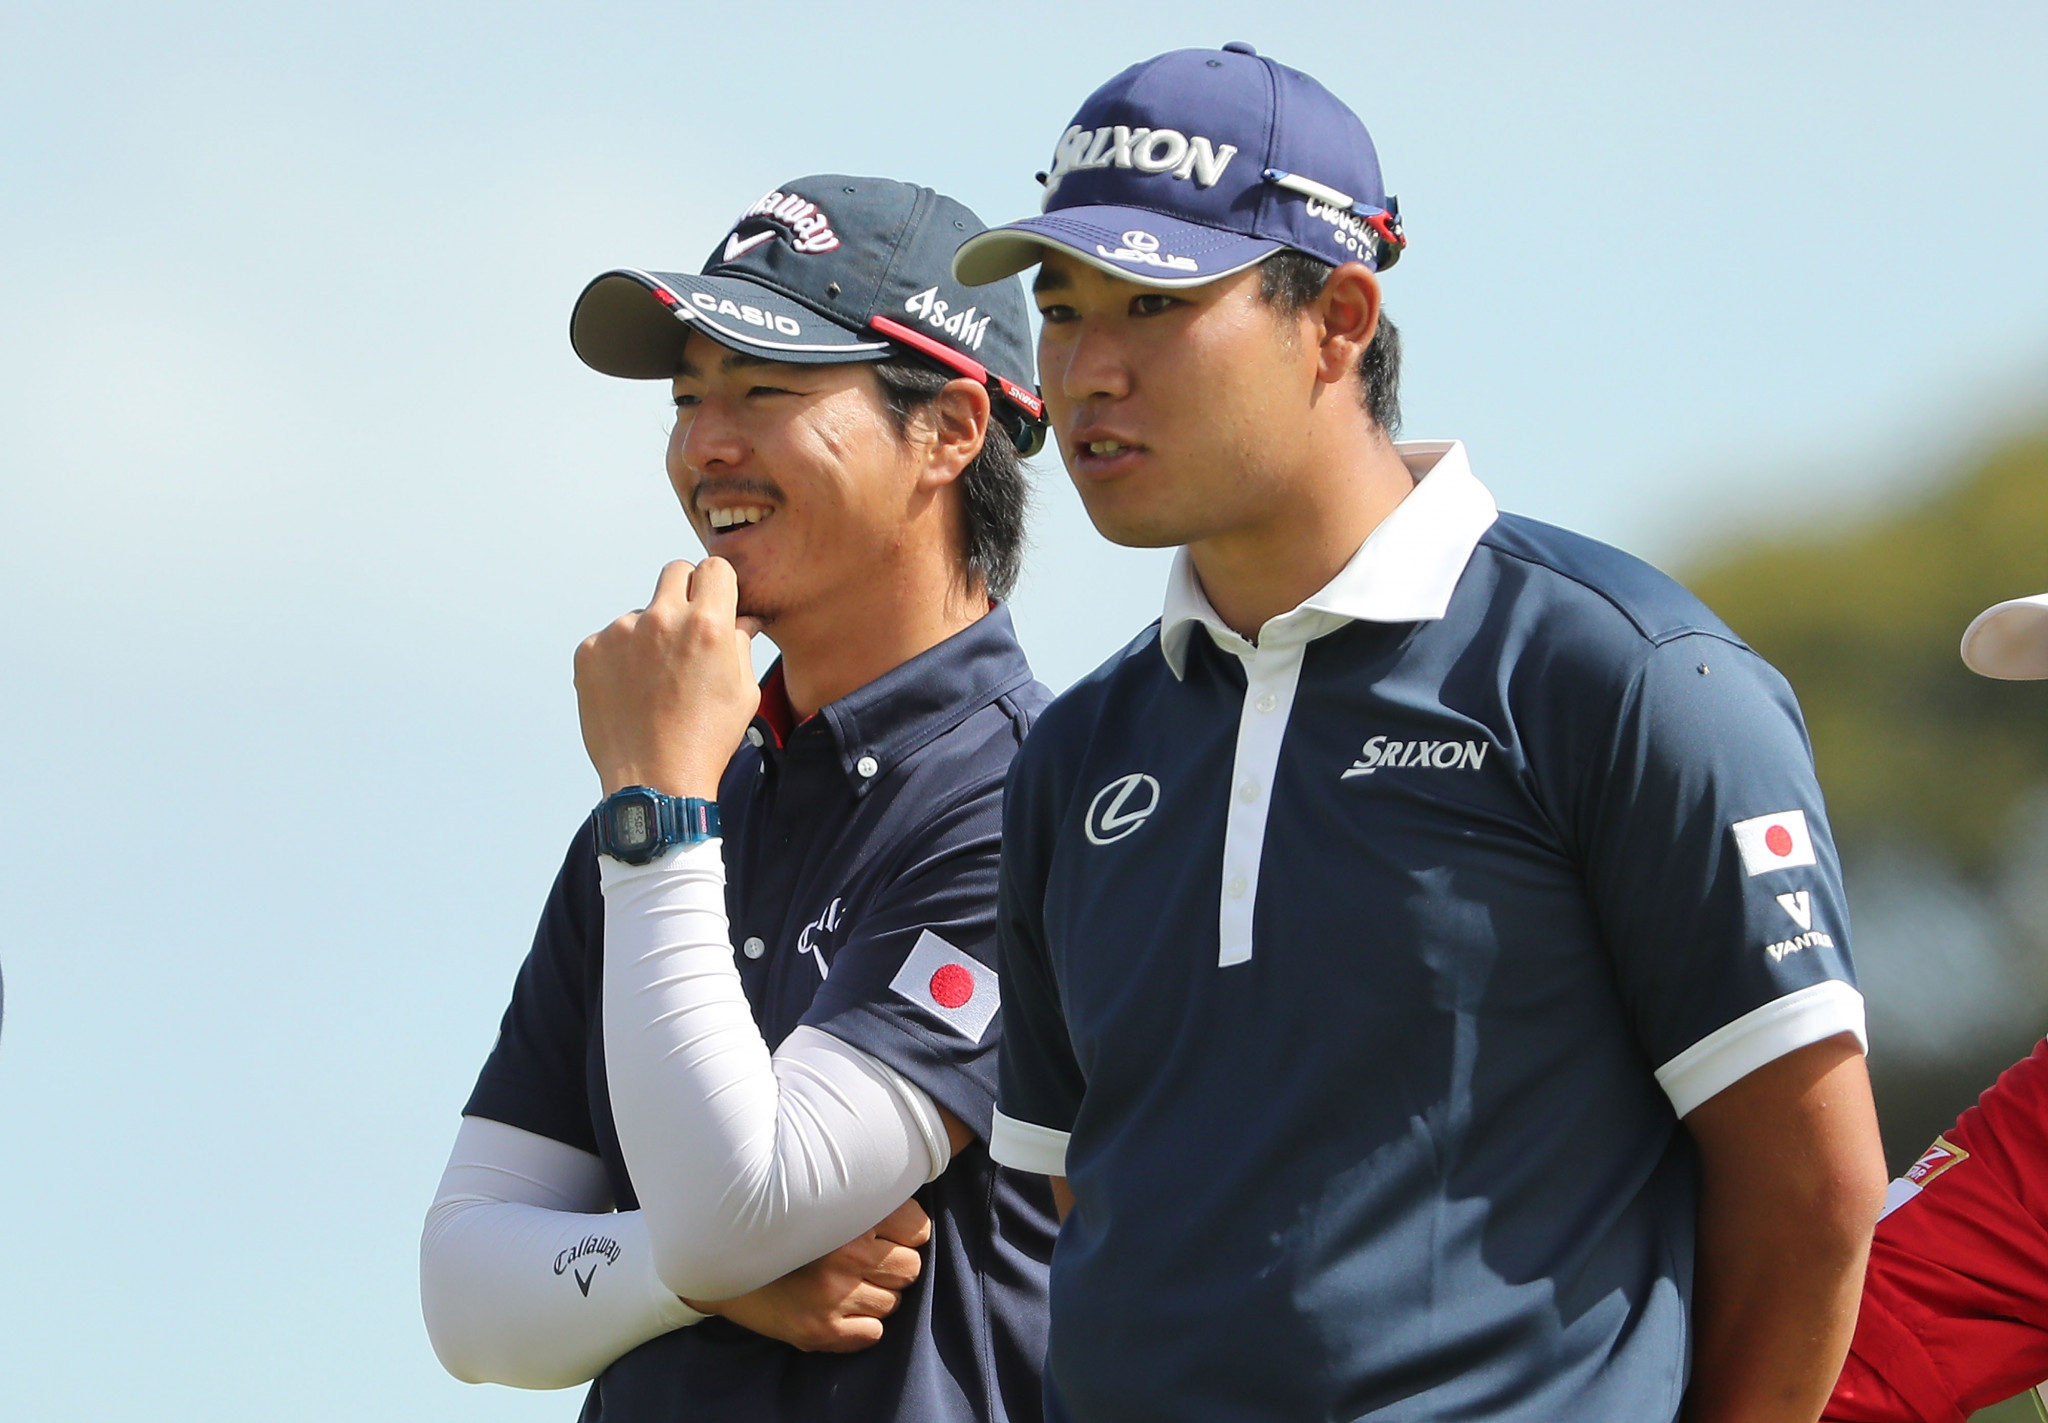 Japanese golfers Matsuyama and Ishikawa launch auction to raise funds for COVID-19 fight